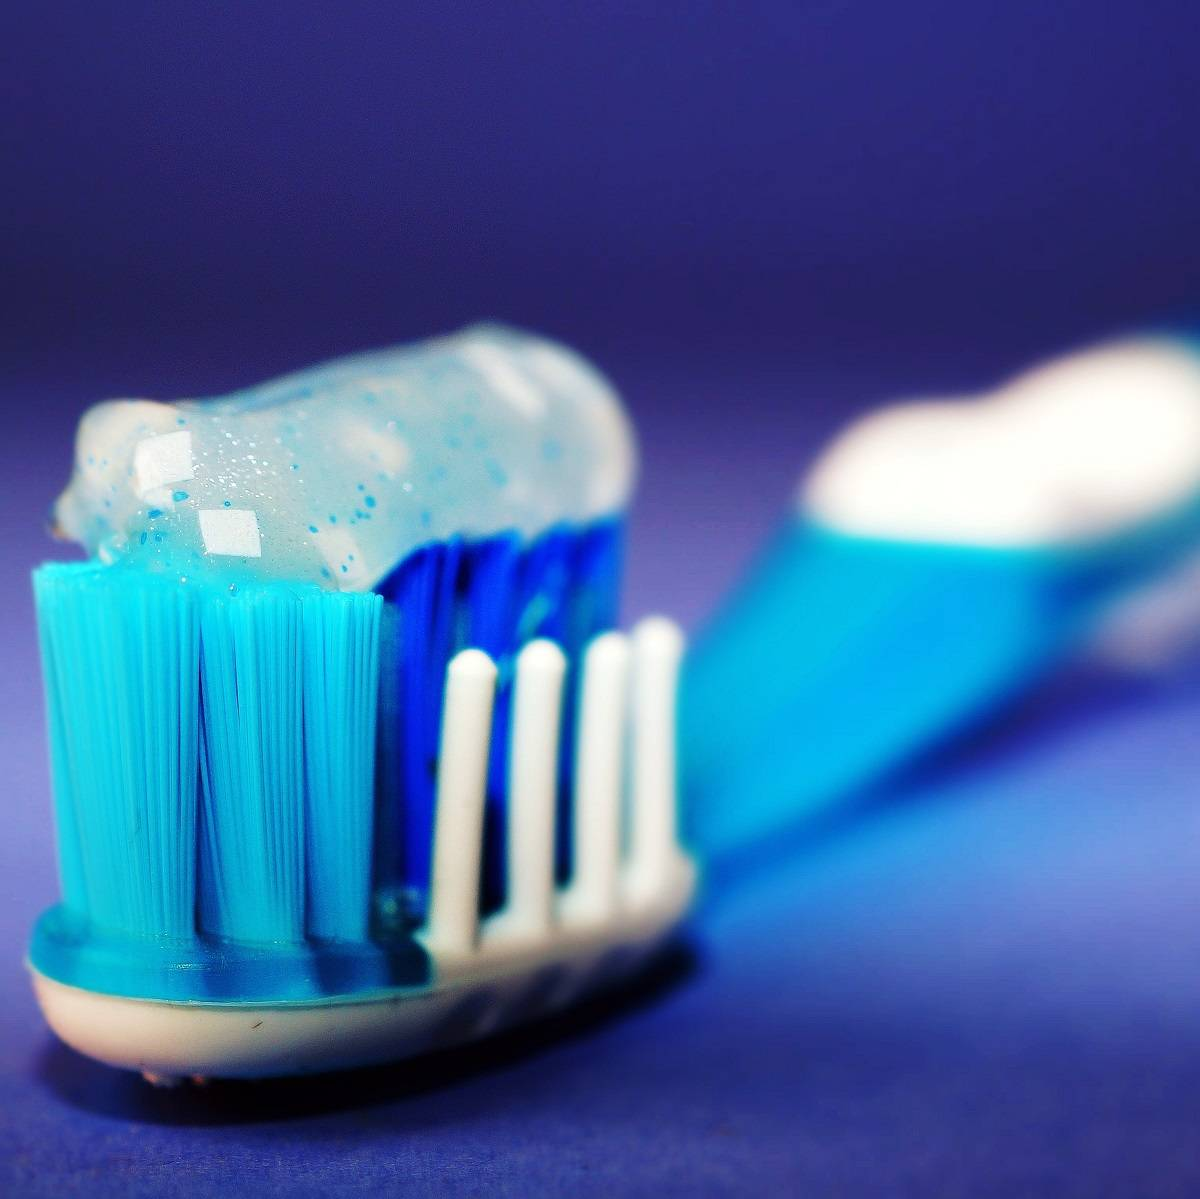 White and blue toothbrush with toothpaste